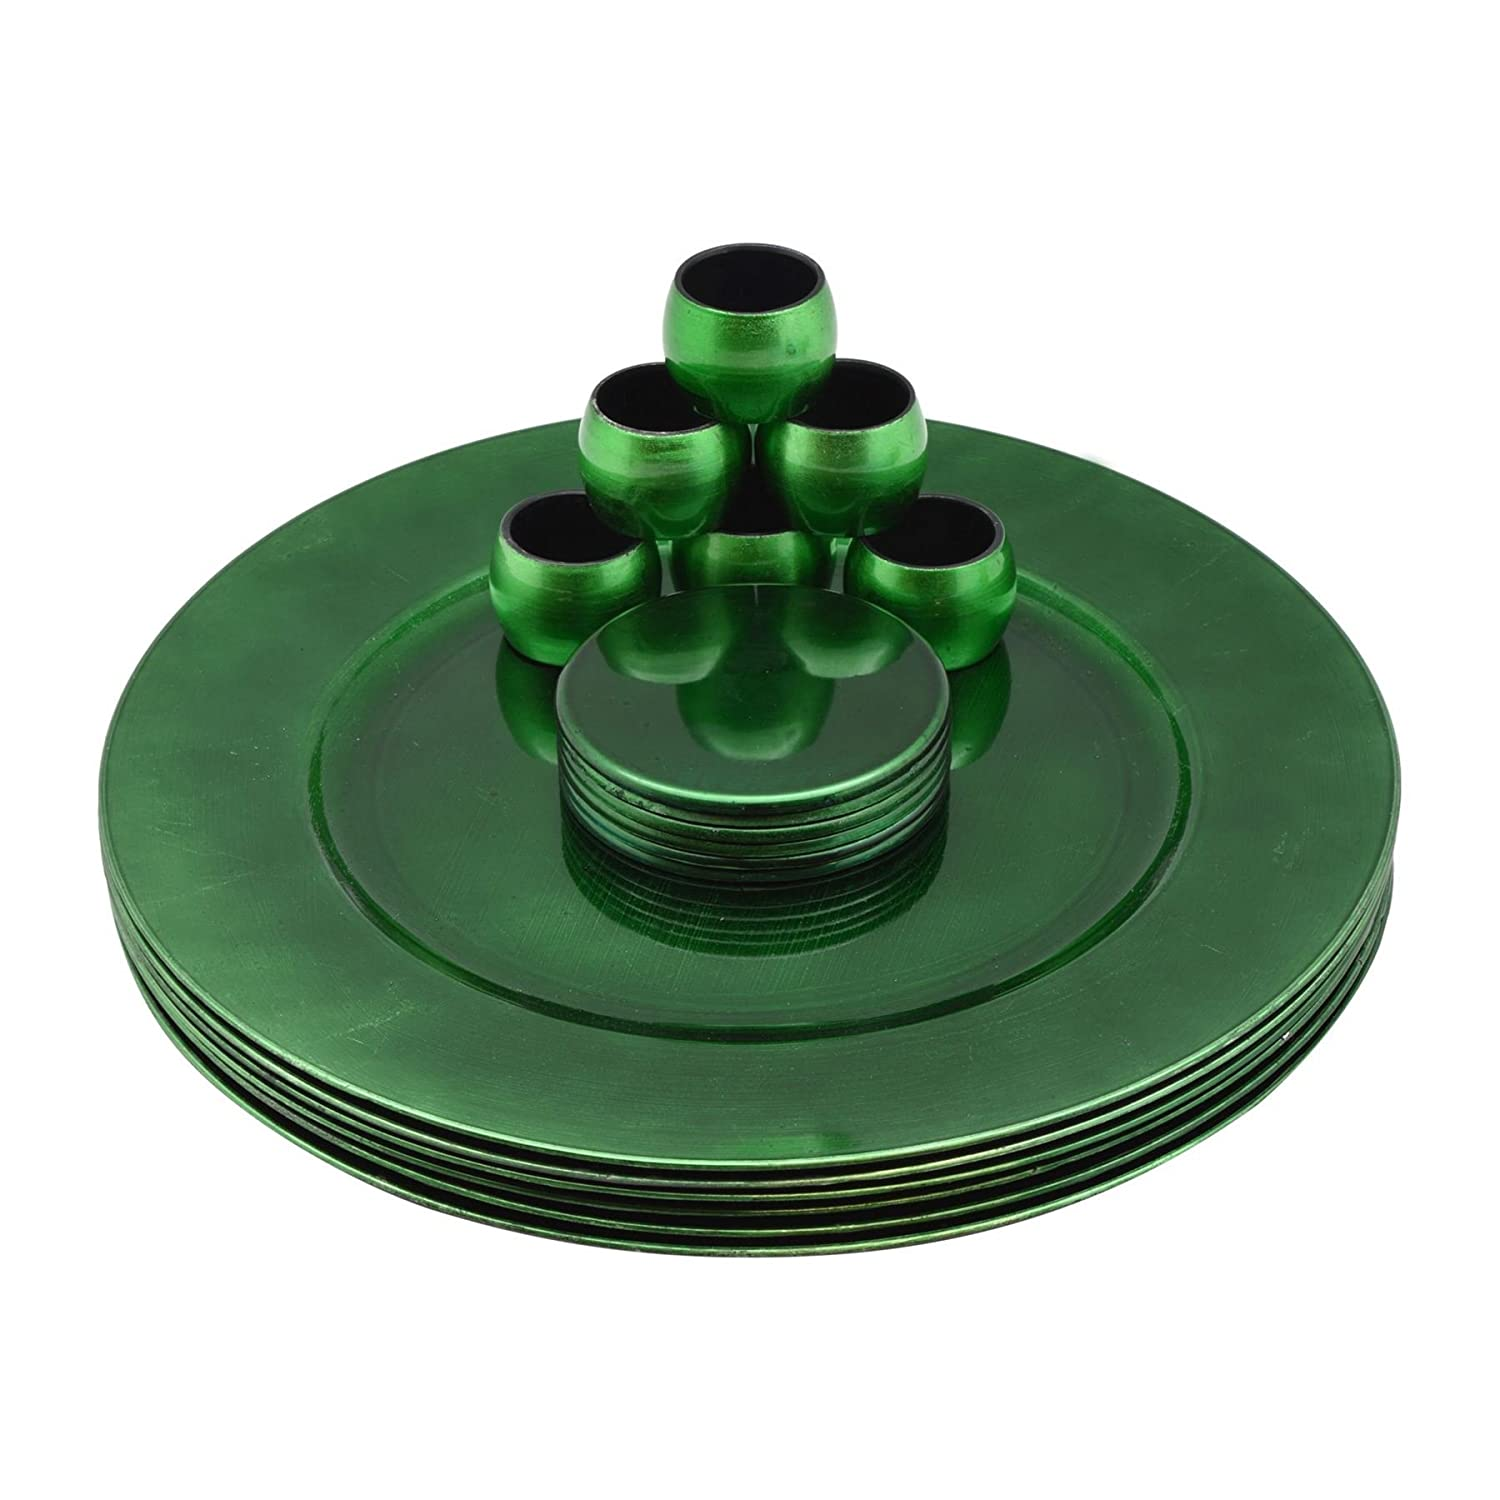 Argon Tableware Round Charger Plates, Coasters & Napkin Rings Set In Green - Set Of 18 (6 Plates, 6 Coasters, 6 Napkins Rings)